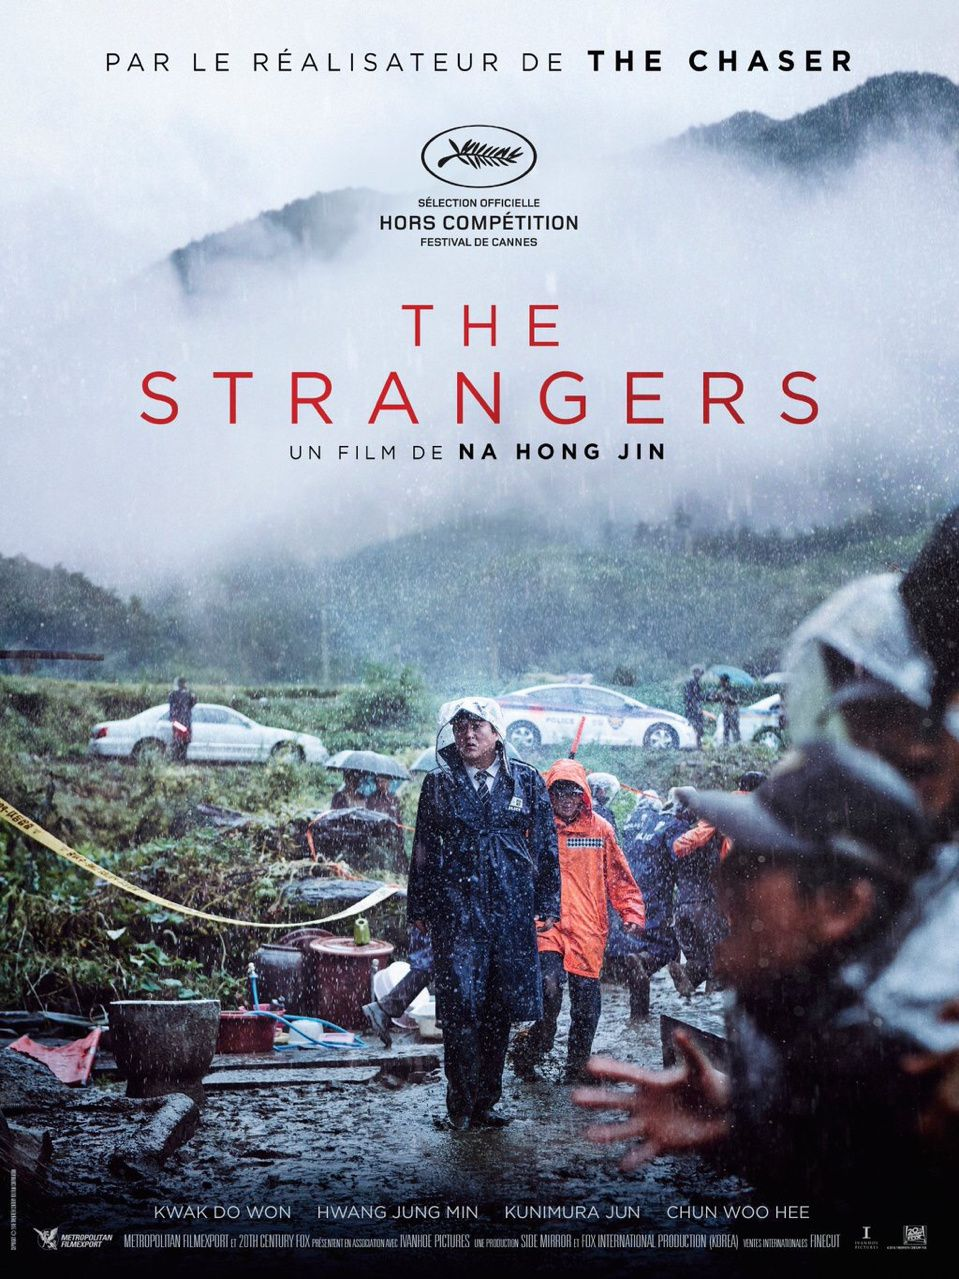 J-7 #Cannes2016 On attend THE STRANGERS #SelectionOfficielle #SeanceSpeciale